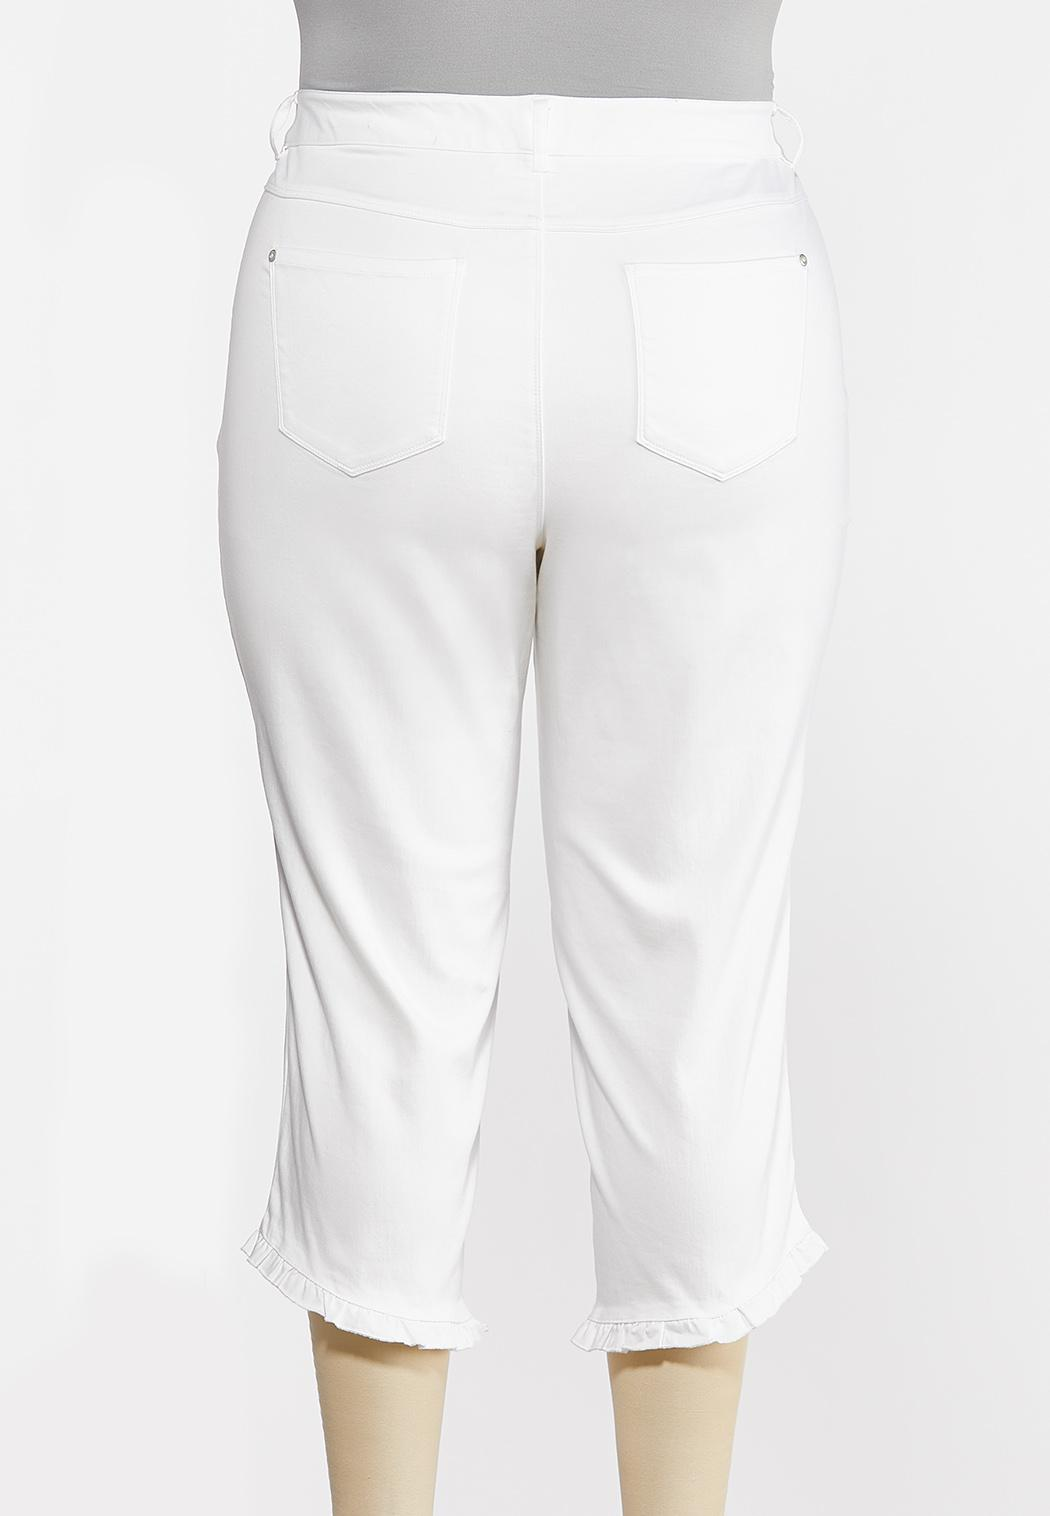 Plus Size Cropped Ruffle Skinny Jeans (Item #44272091)